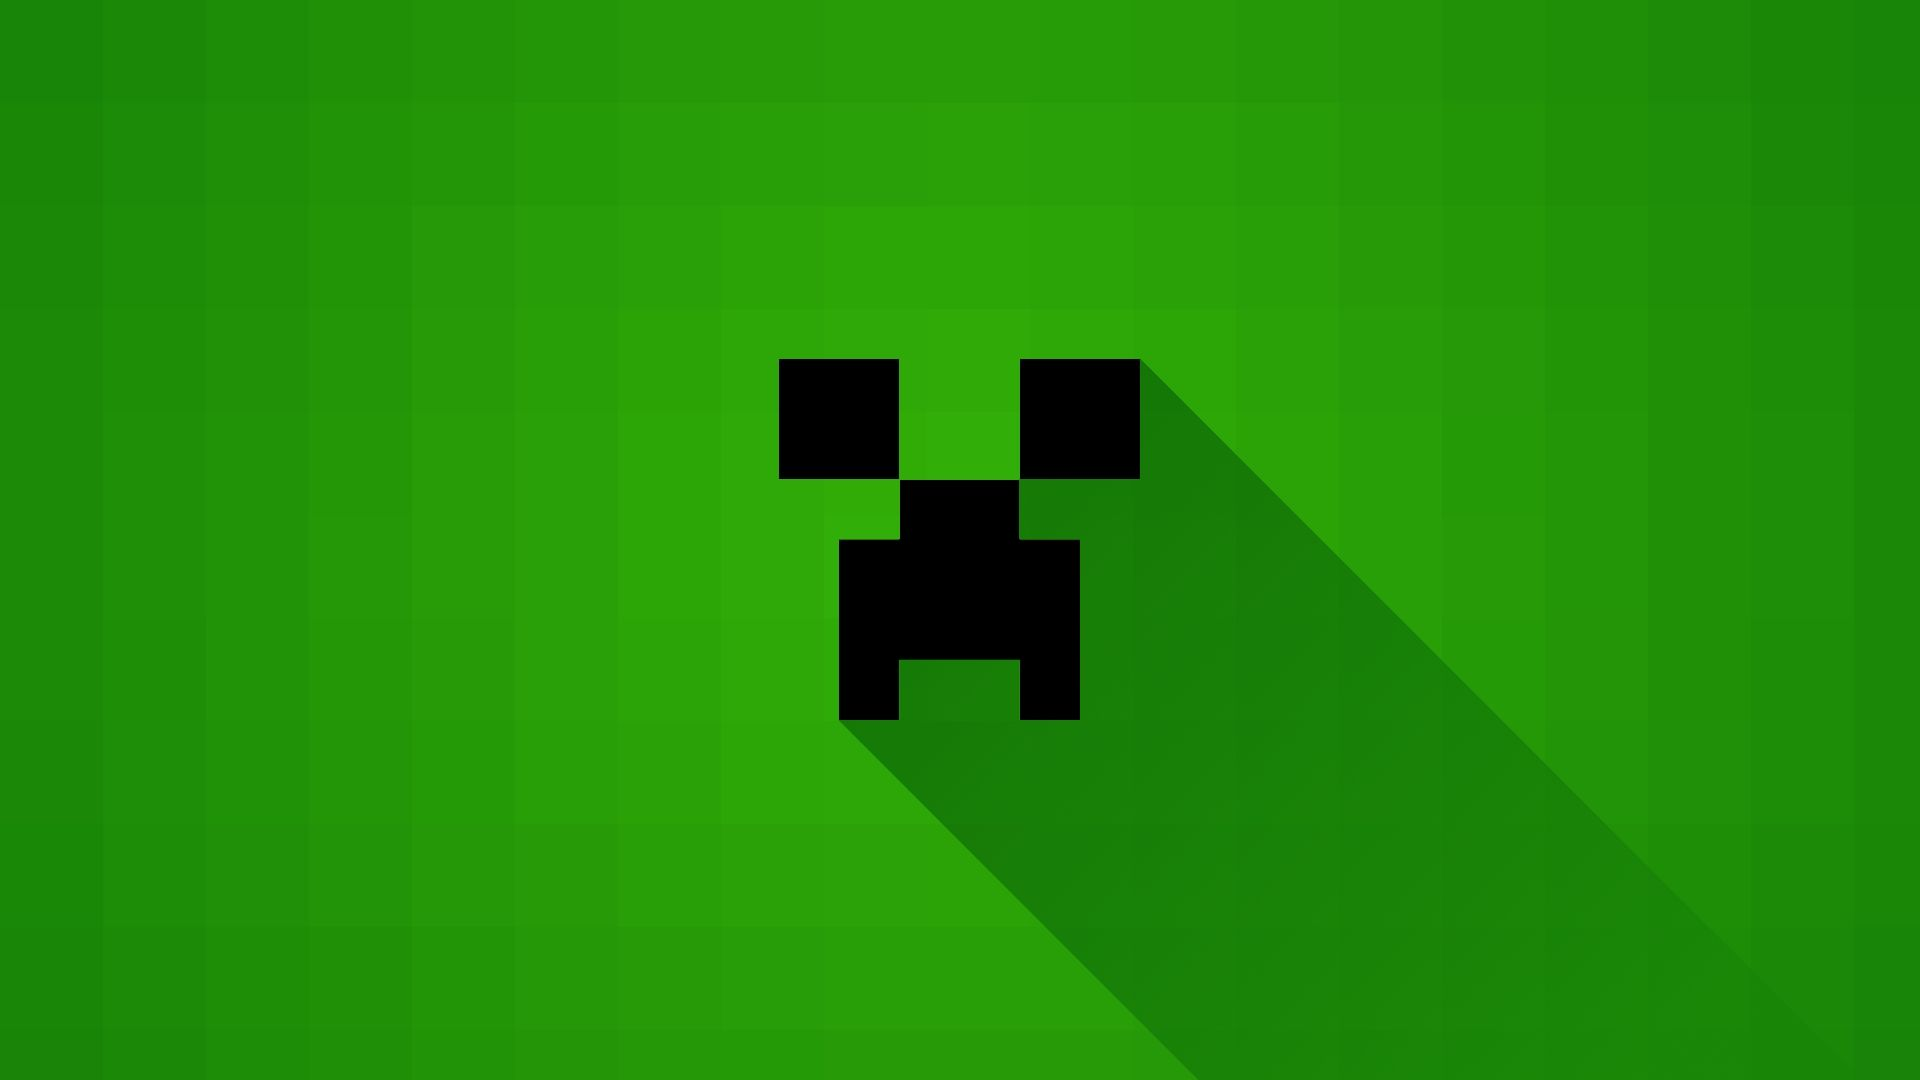 Minecraft Creeper Wallpaper 1080p Gamers Wallpaper 1080p With